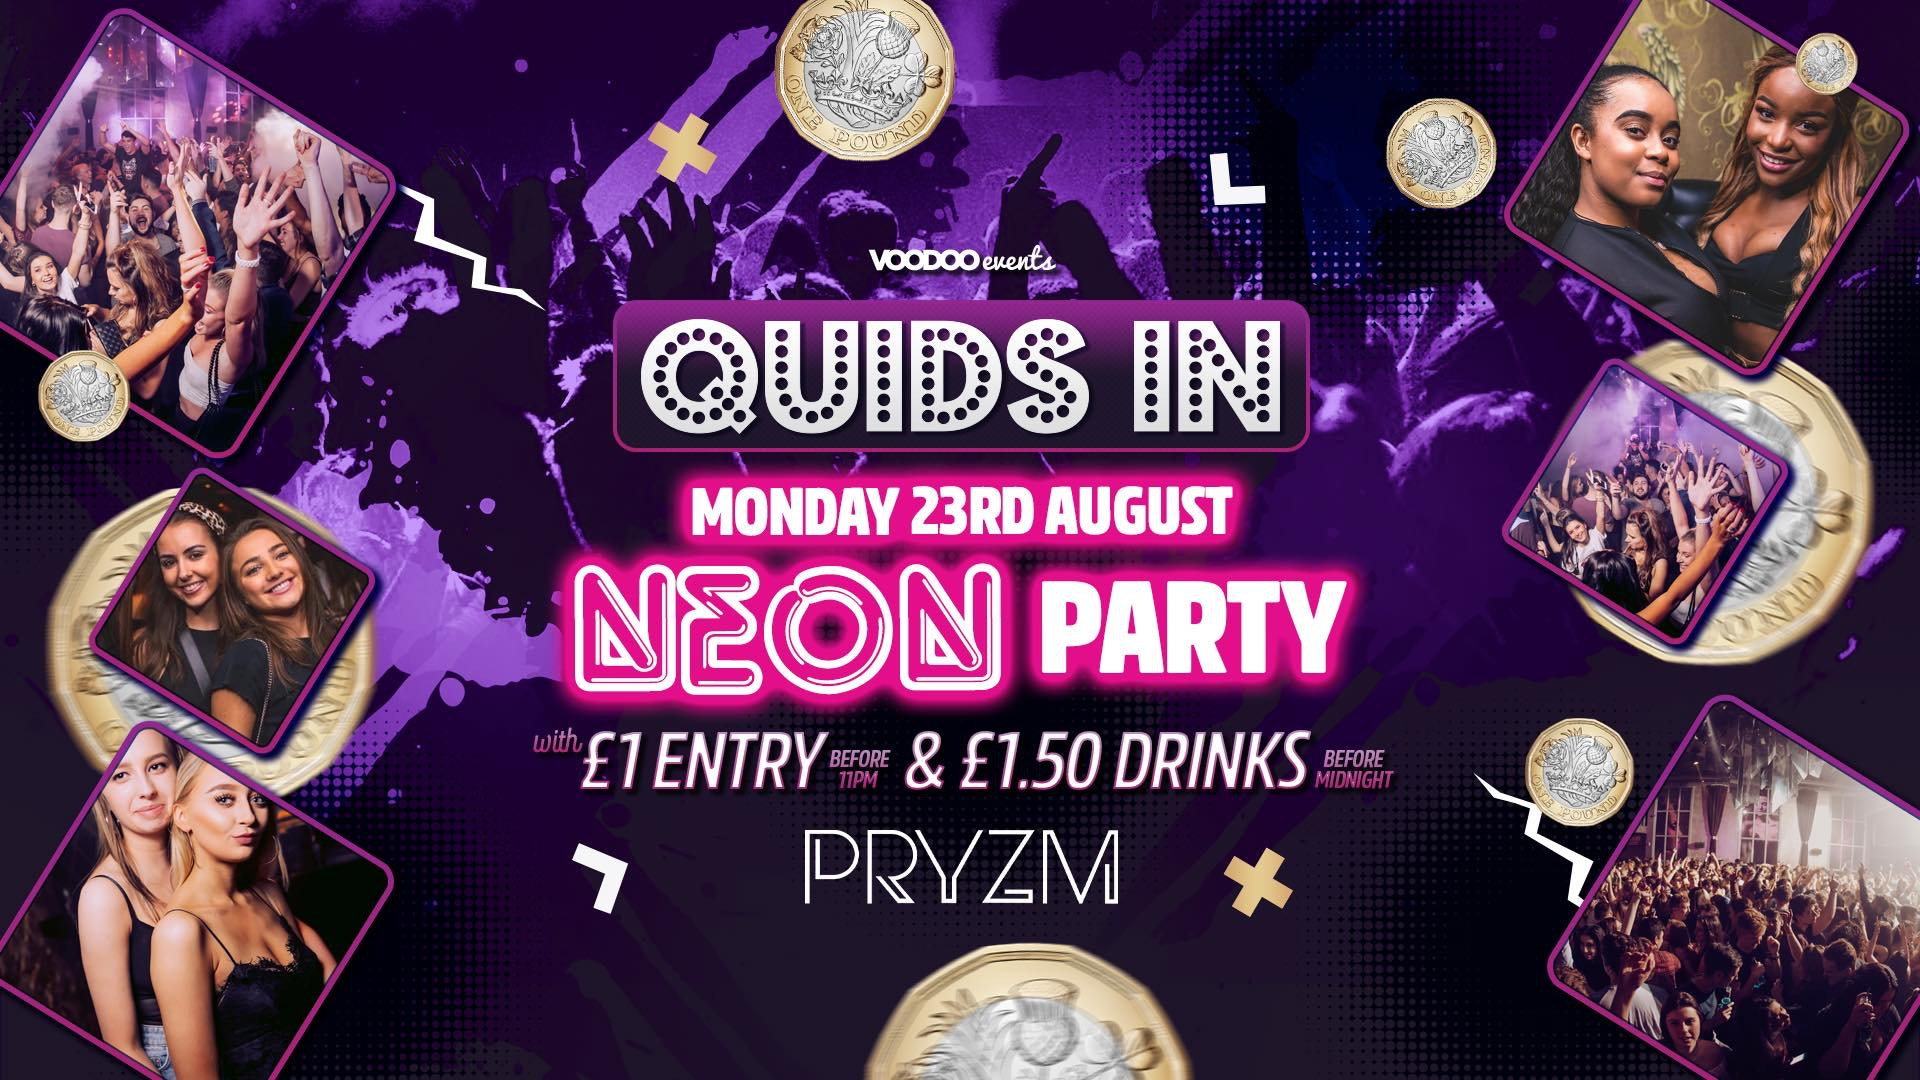 Quids In Mondays at PRYZM – 23rd August NEON PARTY